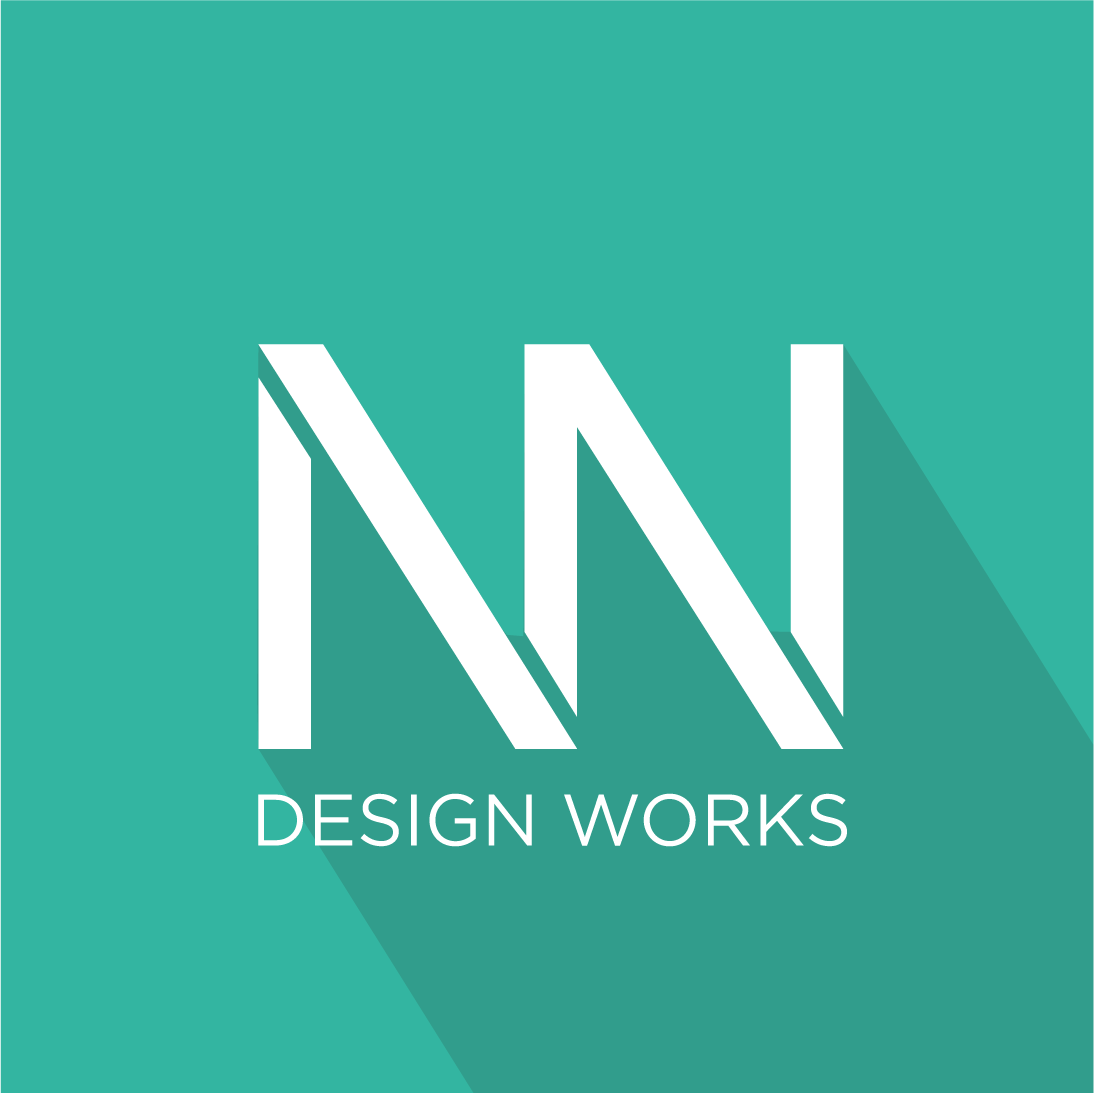 NN Design Works